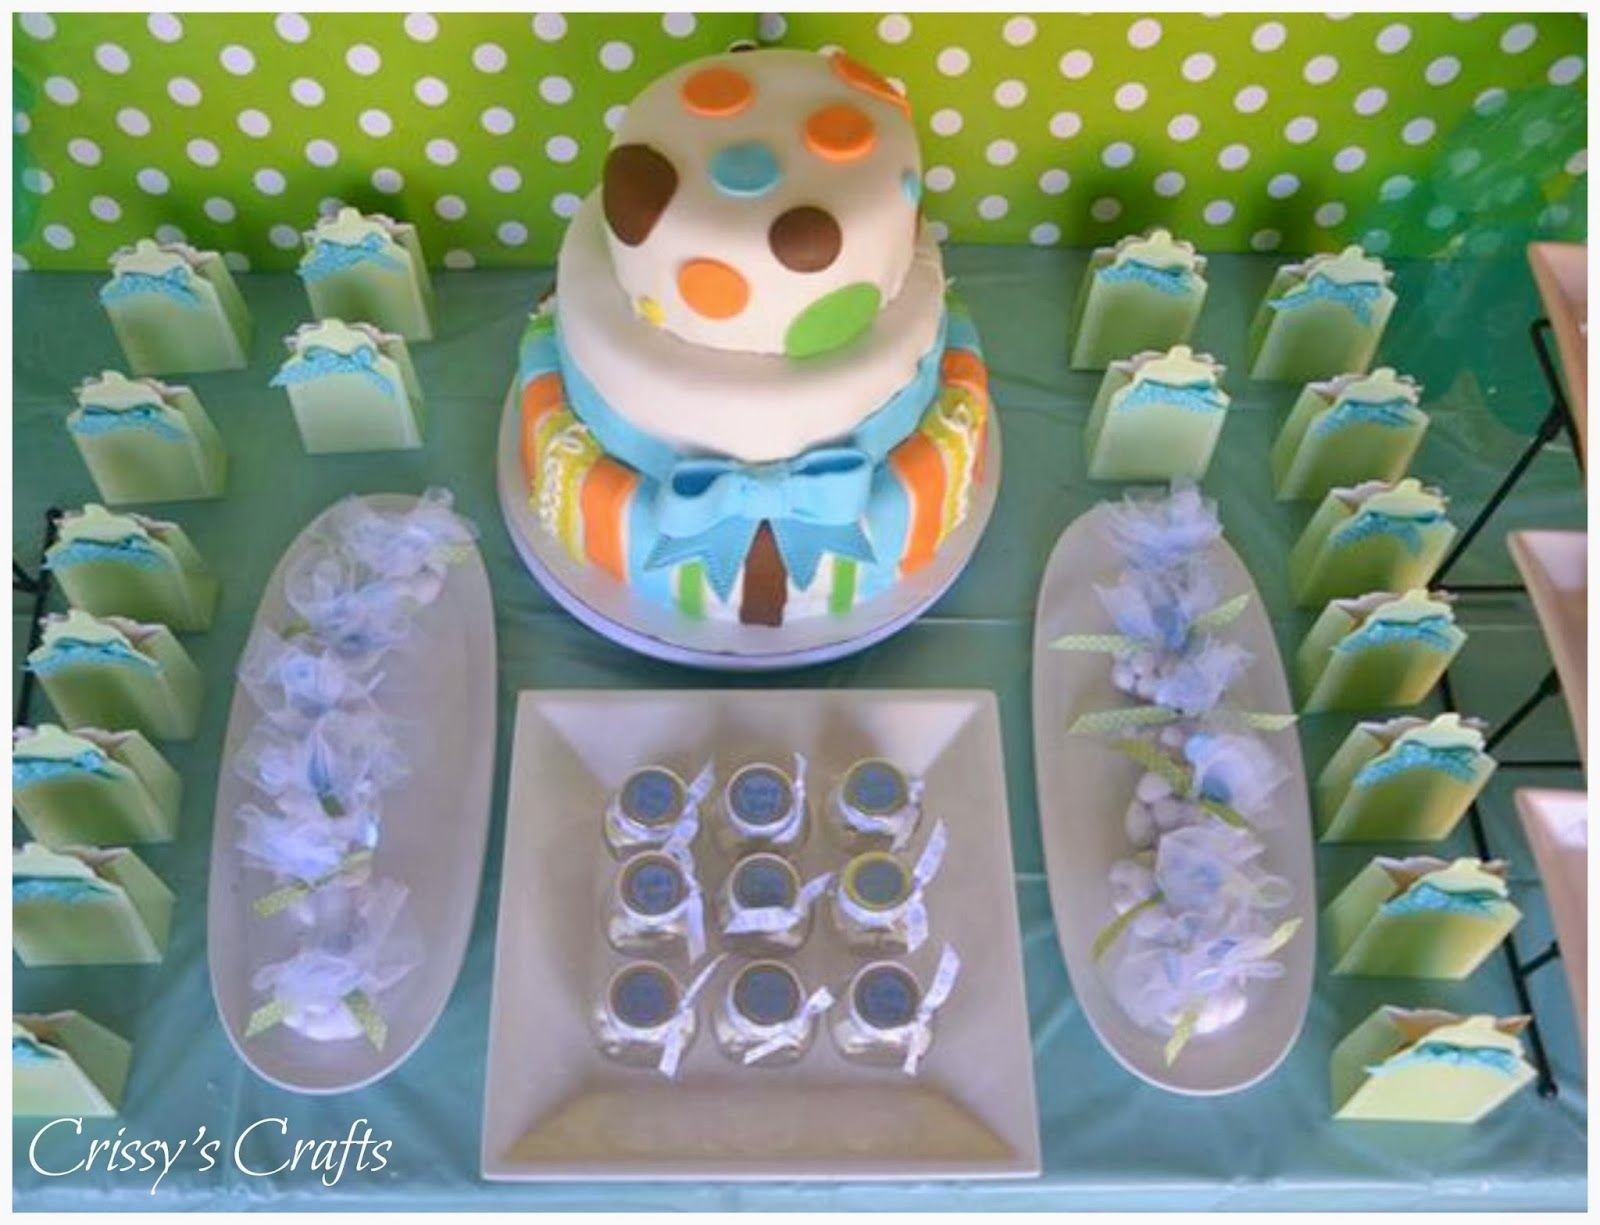 Baby Shower Gifts Crafts ~ Enchantingly adorable baby shower gift ideas that will make you